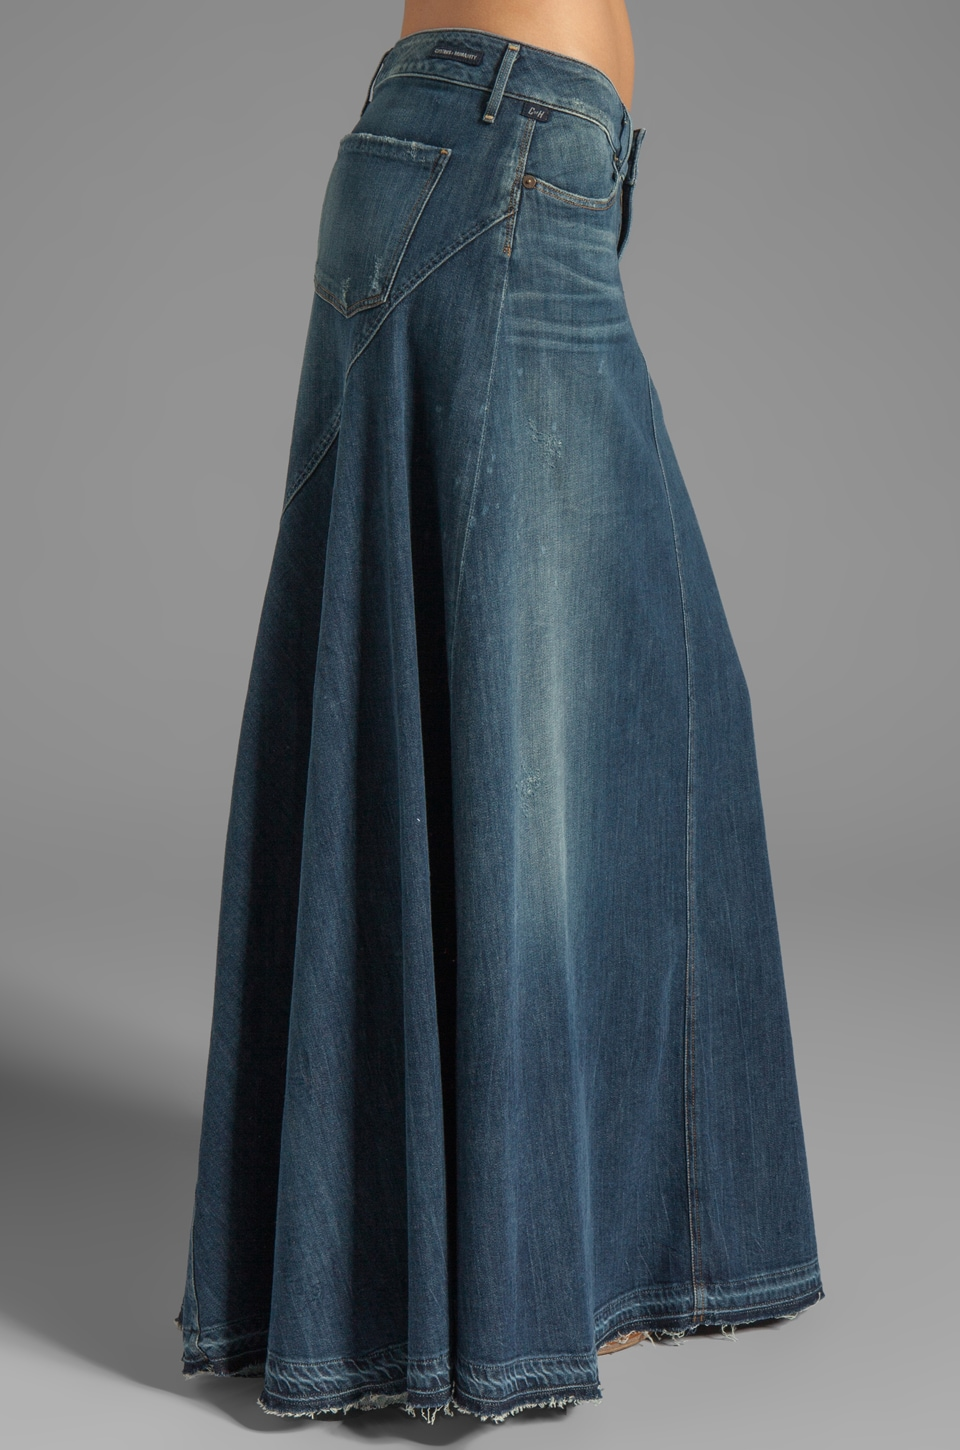 Citizens of Humanity Jeans Anja Maxi Skirt in Dizzy | REVOLVE